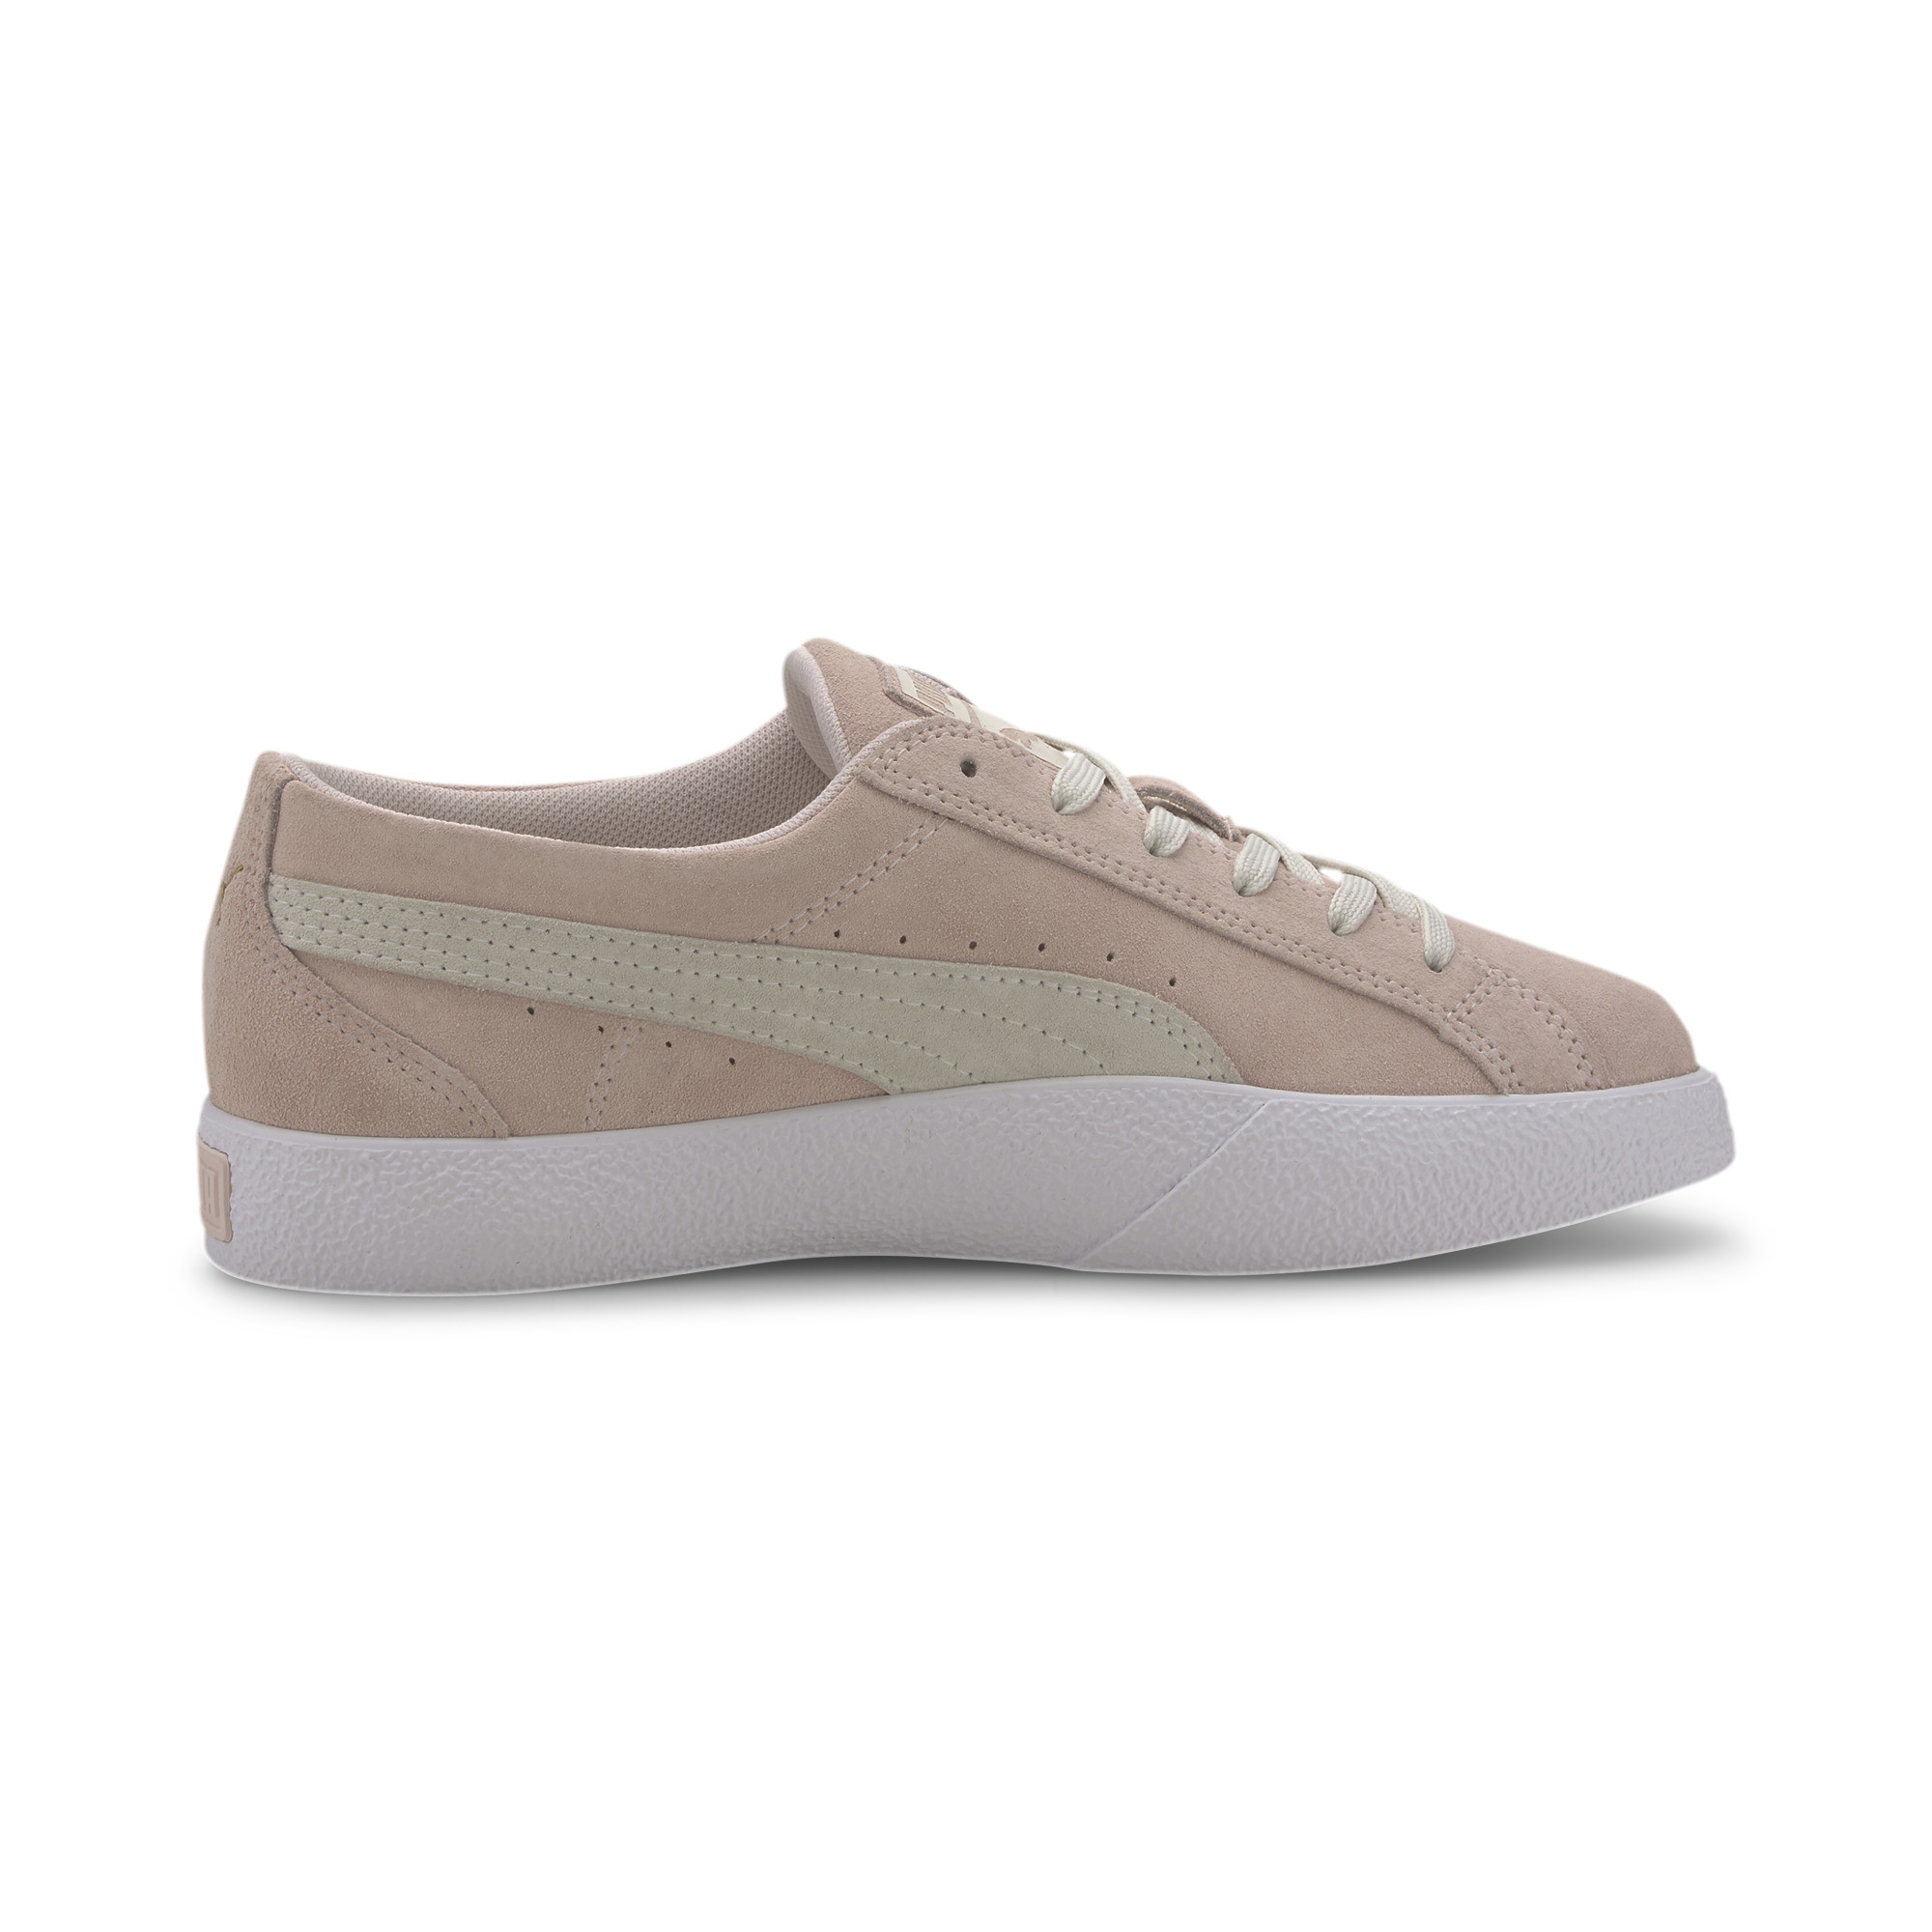 PUMA-Women-039-s-Love-Suede-Sneakers thumbnail 7